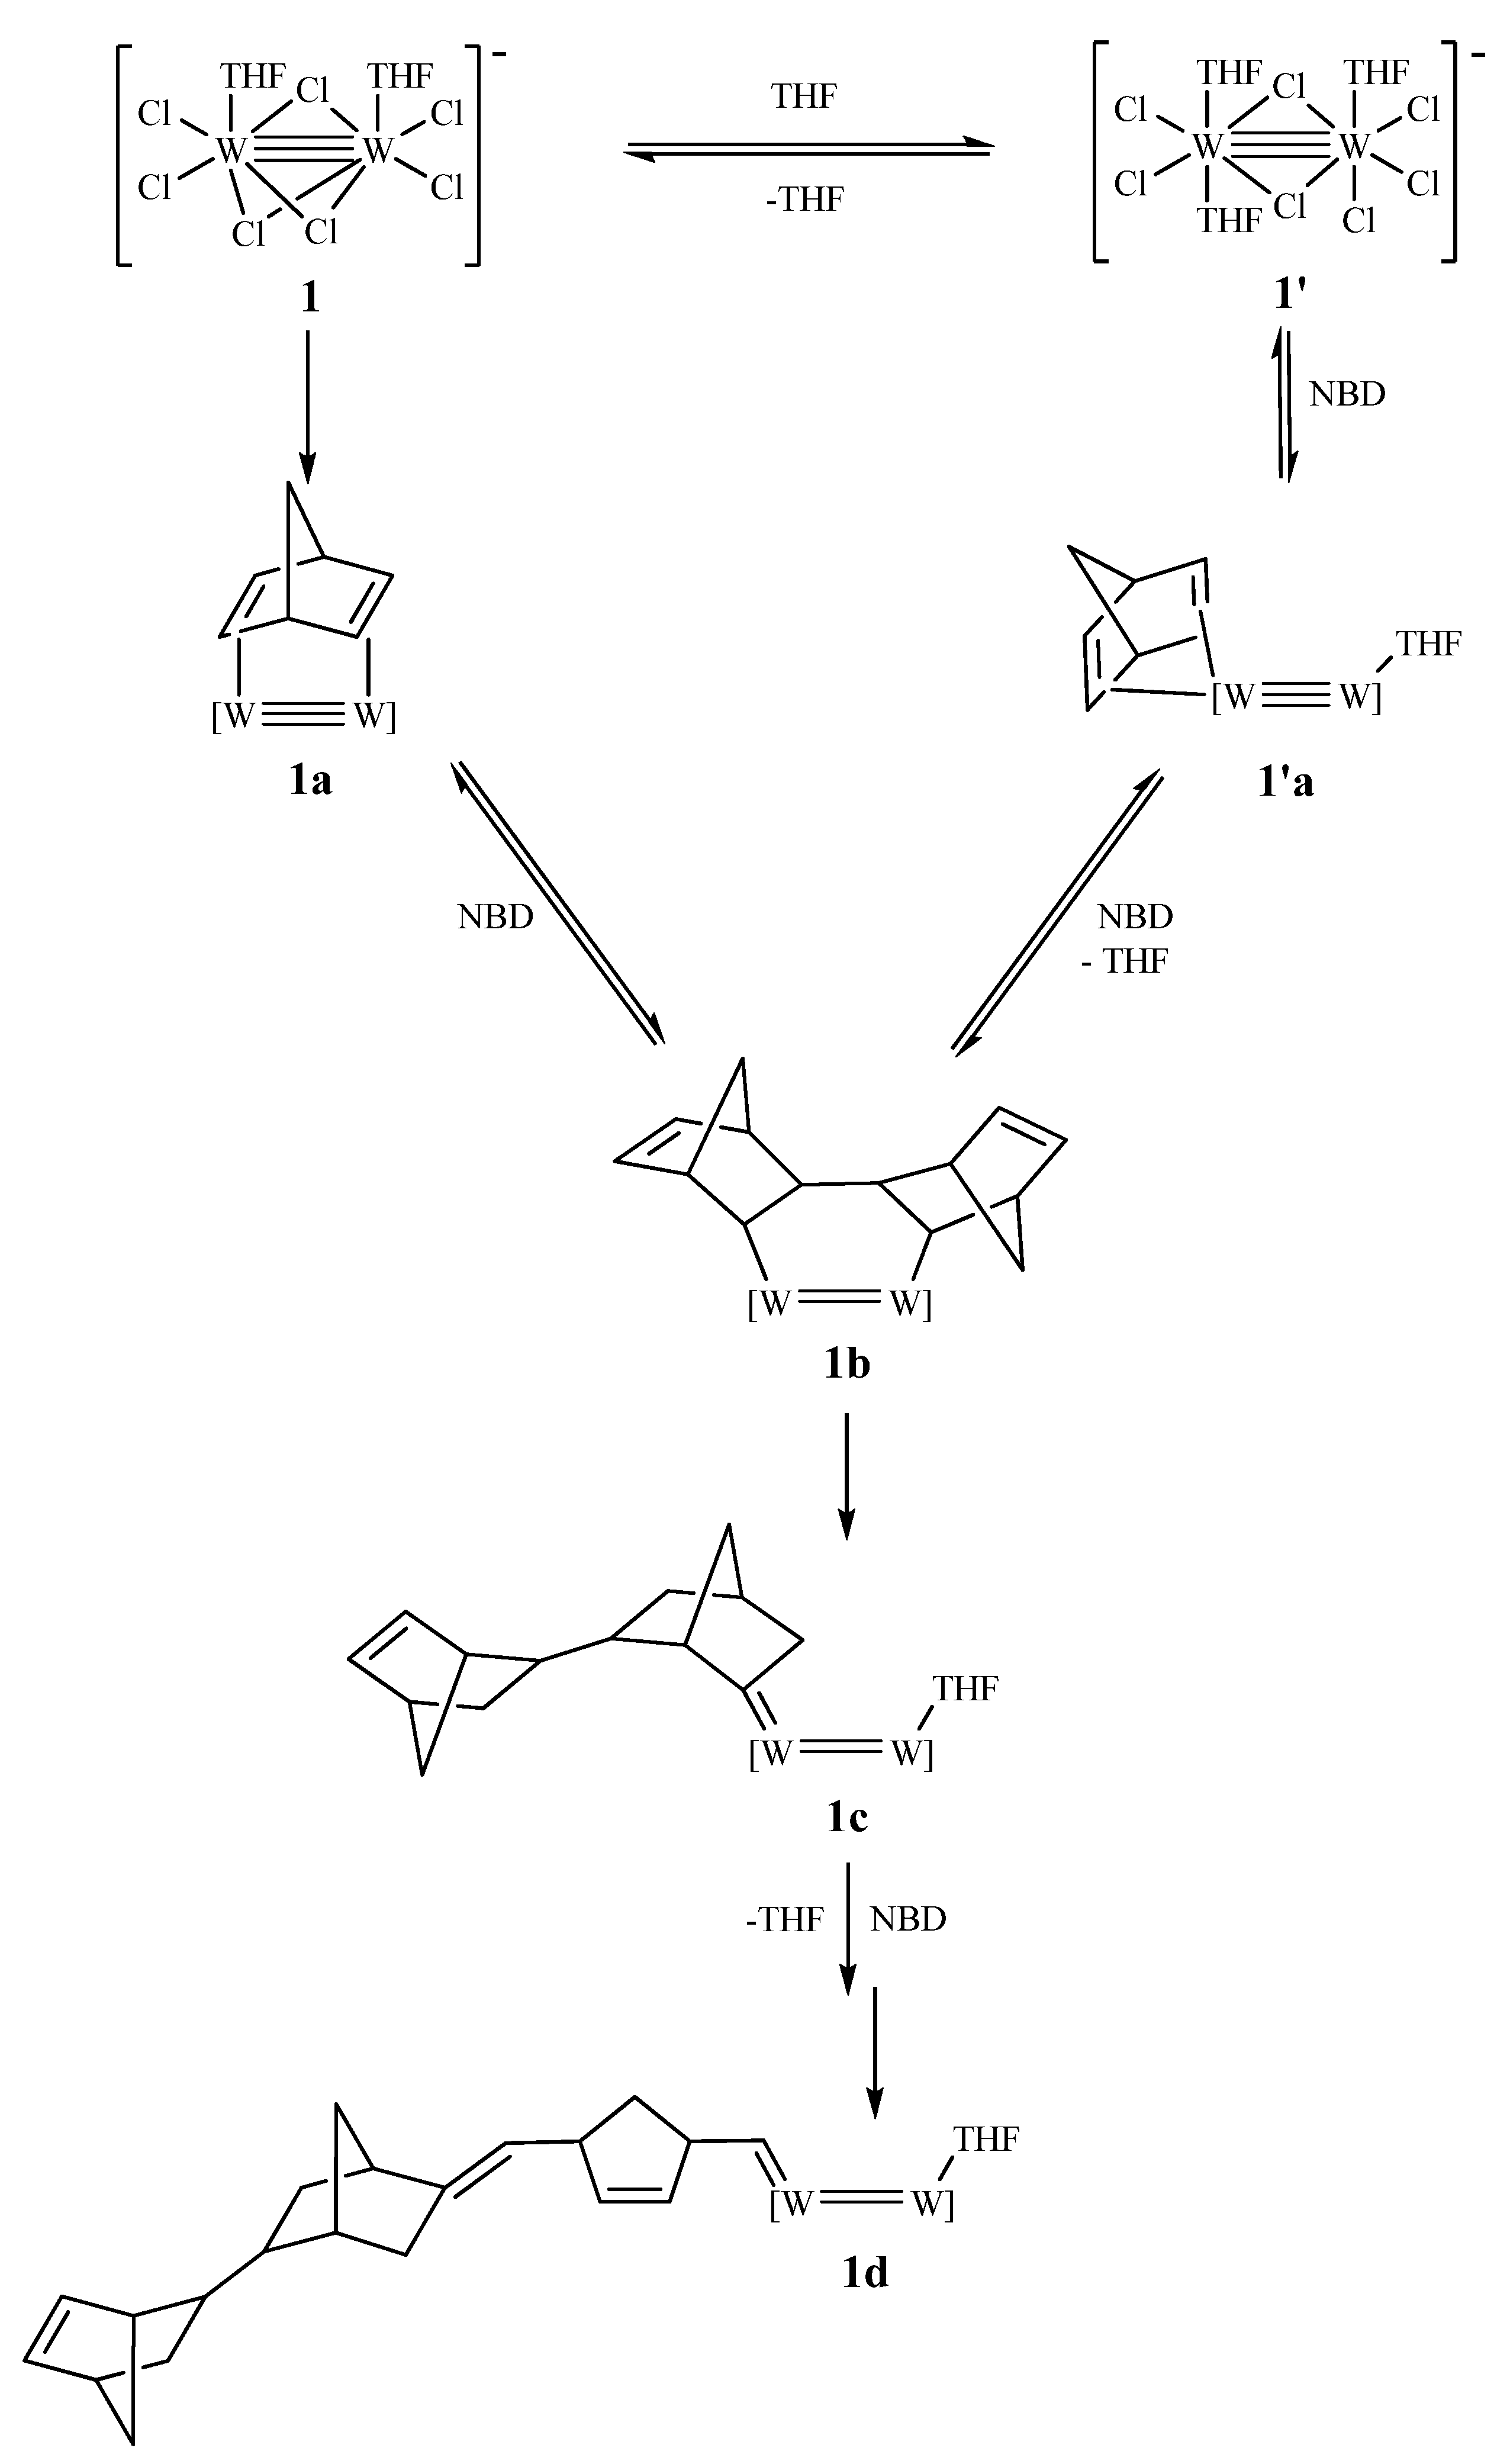 metathesis opening polymerization ring Springerlink search synthesis of main-chain organometallic polymers by ring-opening metathesis polymerization has been used as an alternate method to prepare.